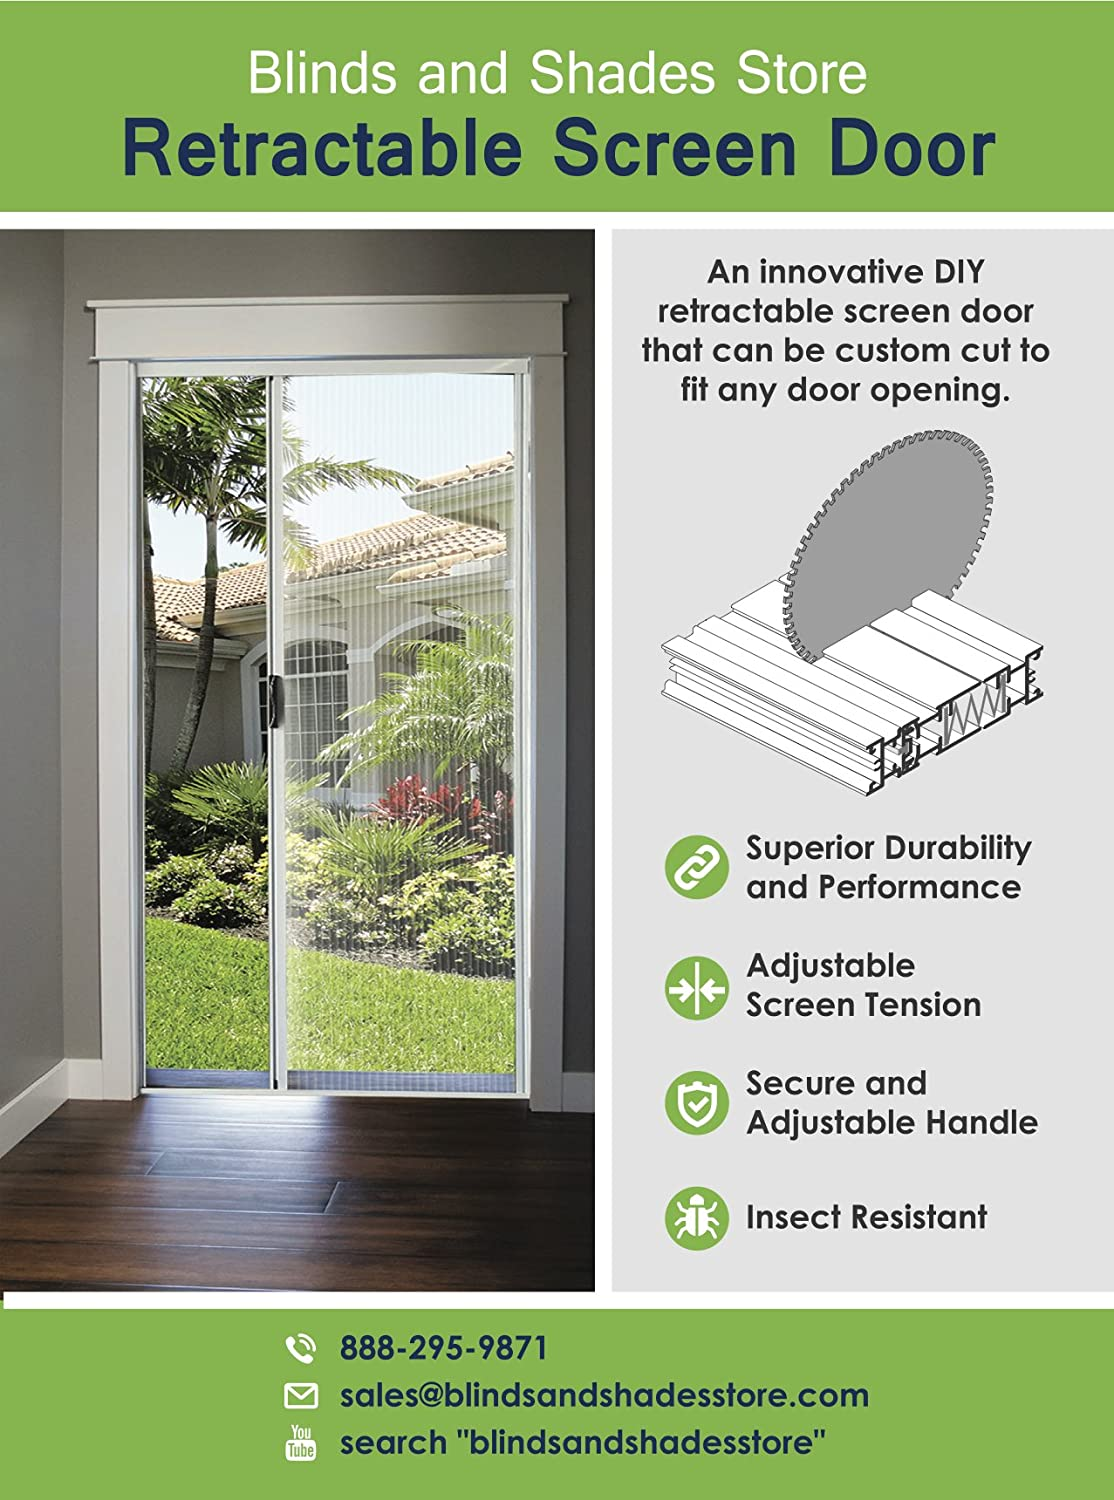 Blinds And Shades Store Diy Retractable Screen Door 33 37 X 91